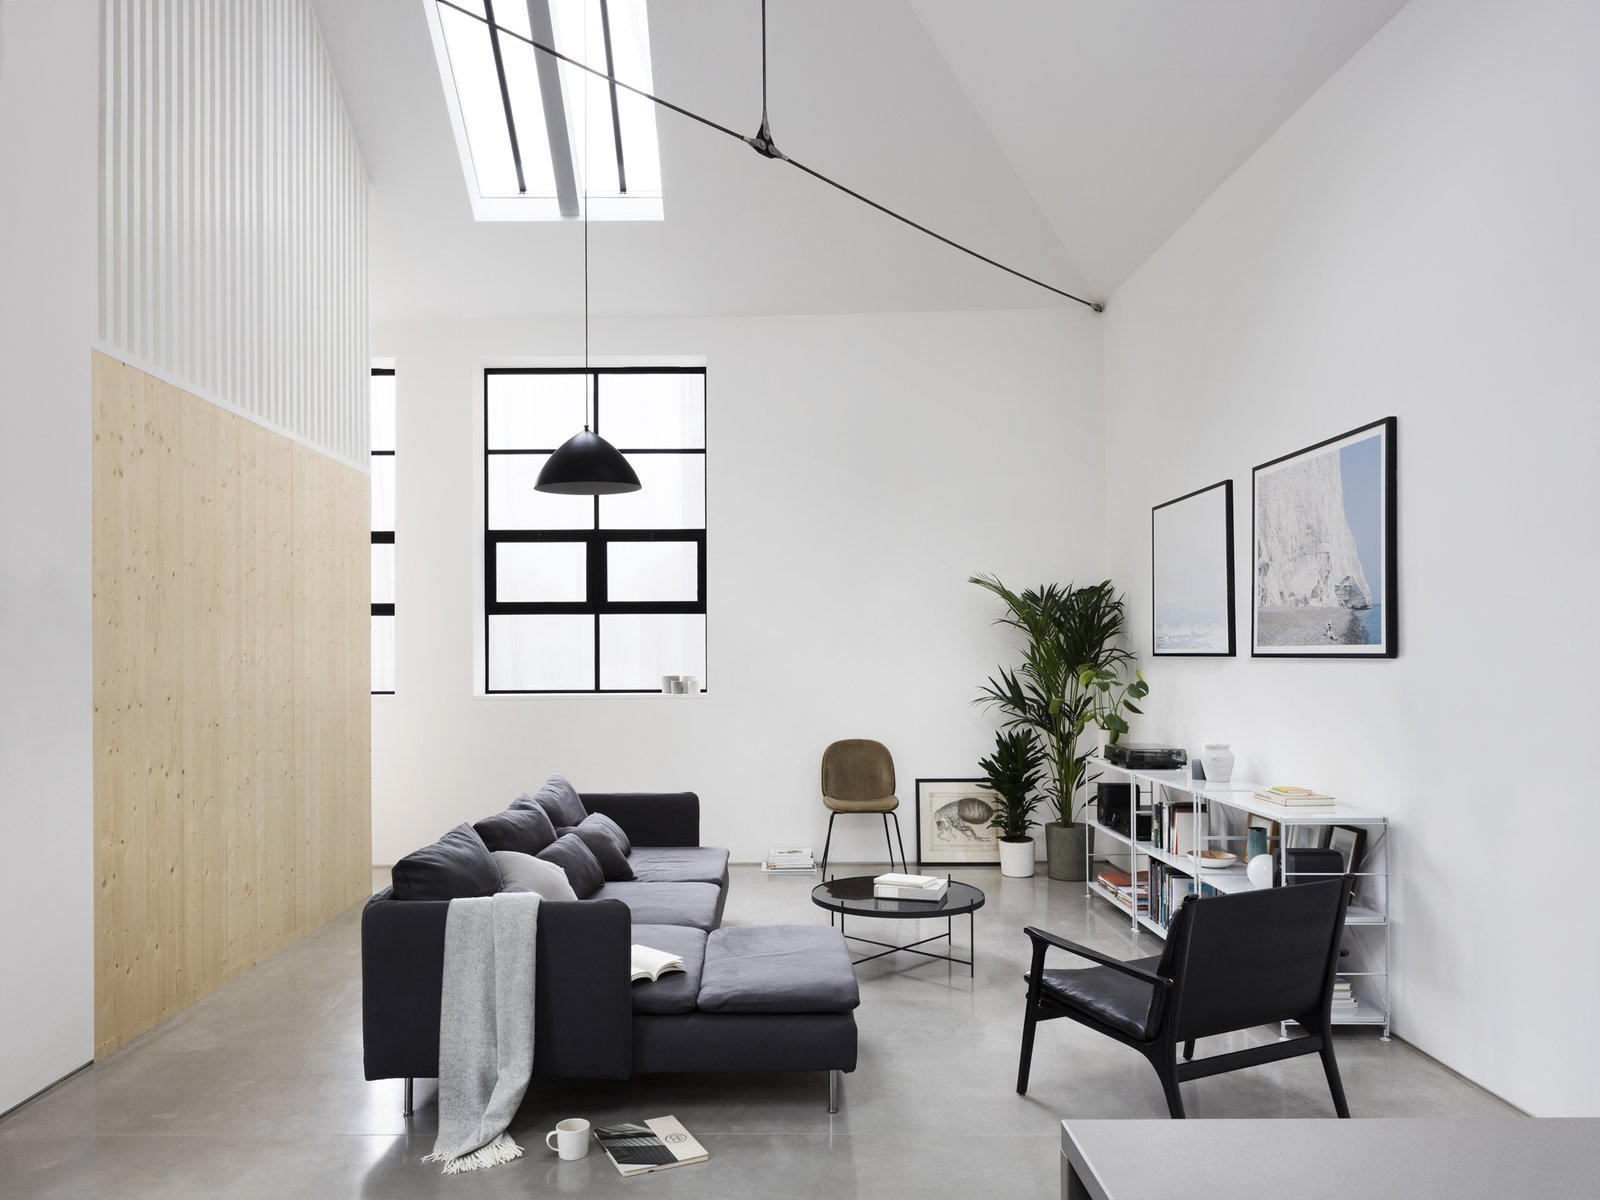 A large living space combines the best of all elements: exposed truss, steel framed windows, wood accents, simple pendant light,  and mod furnishings.